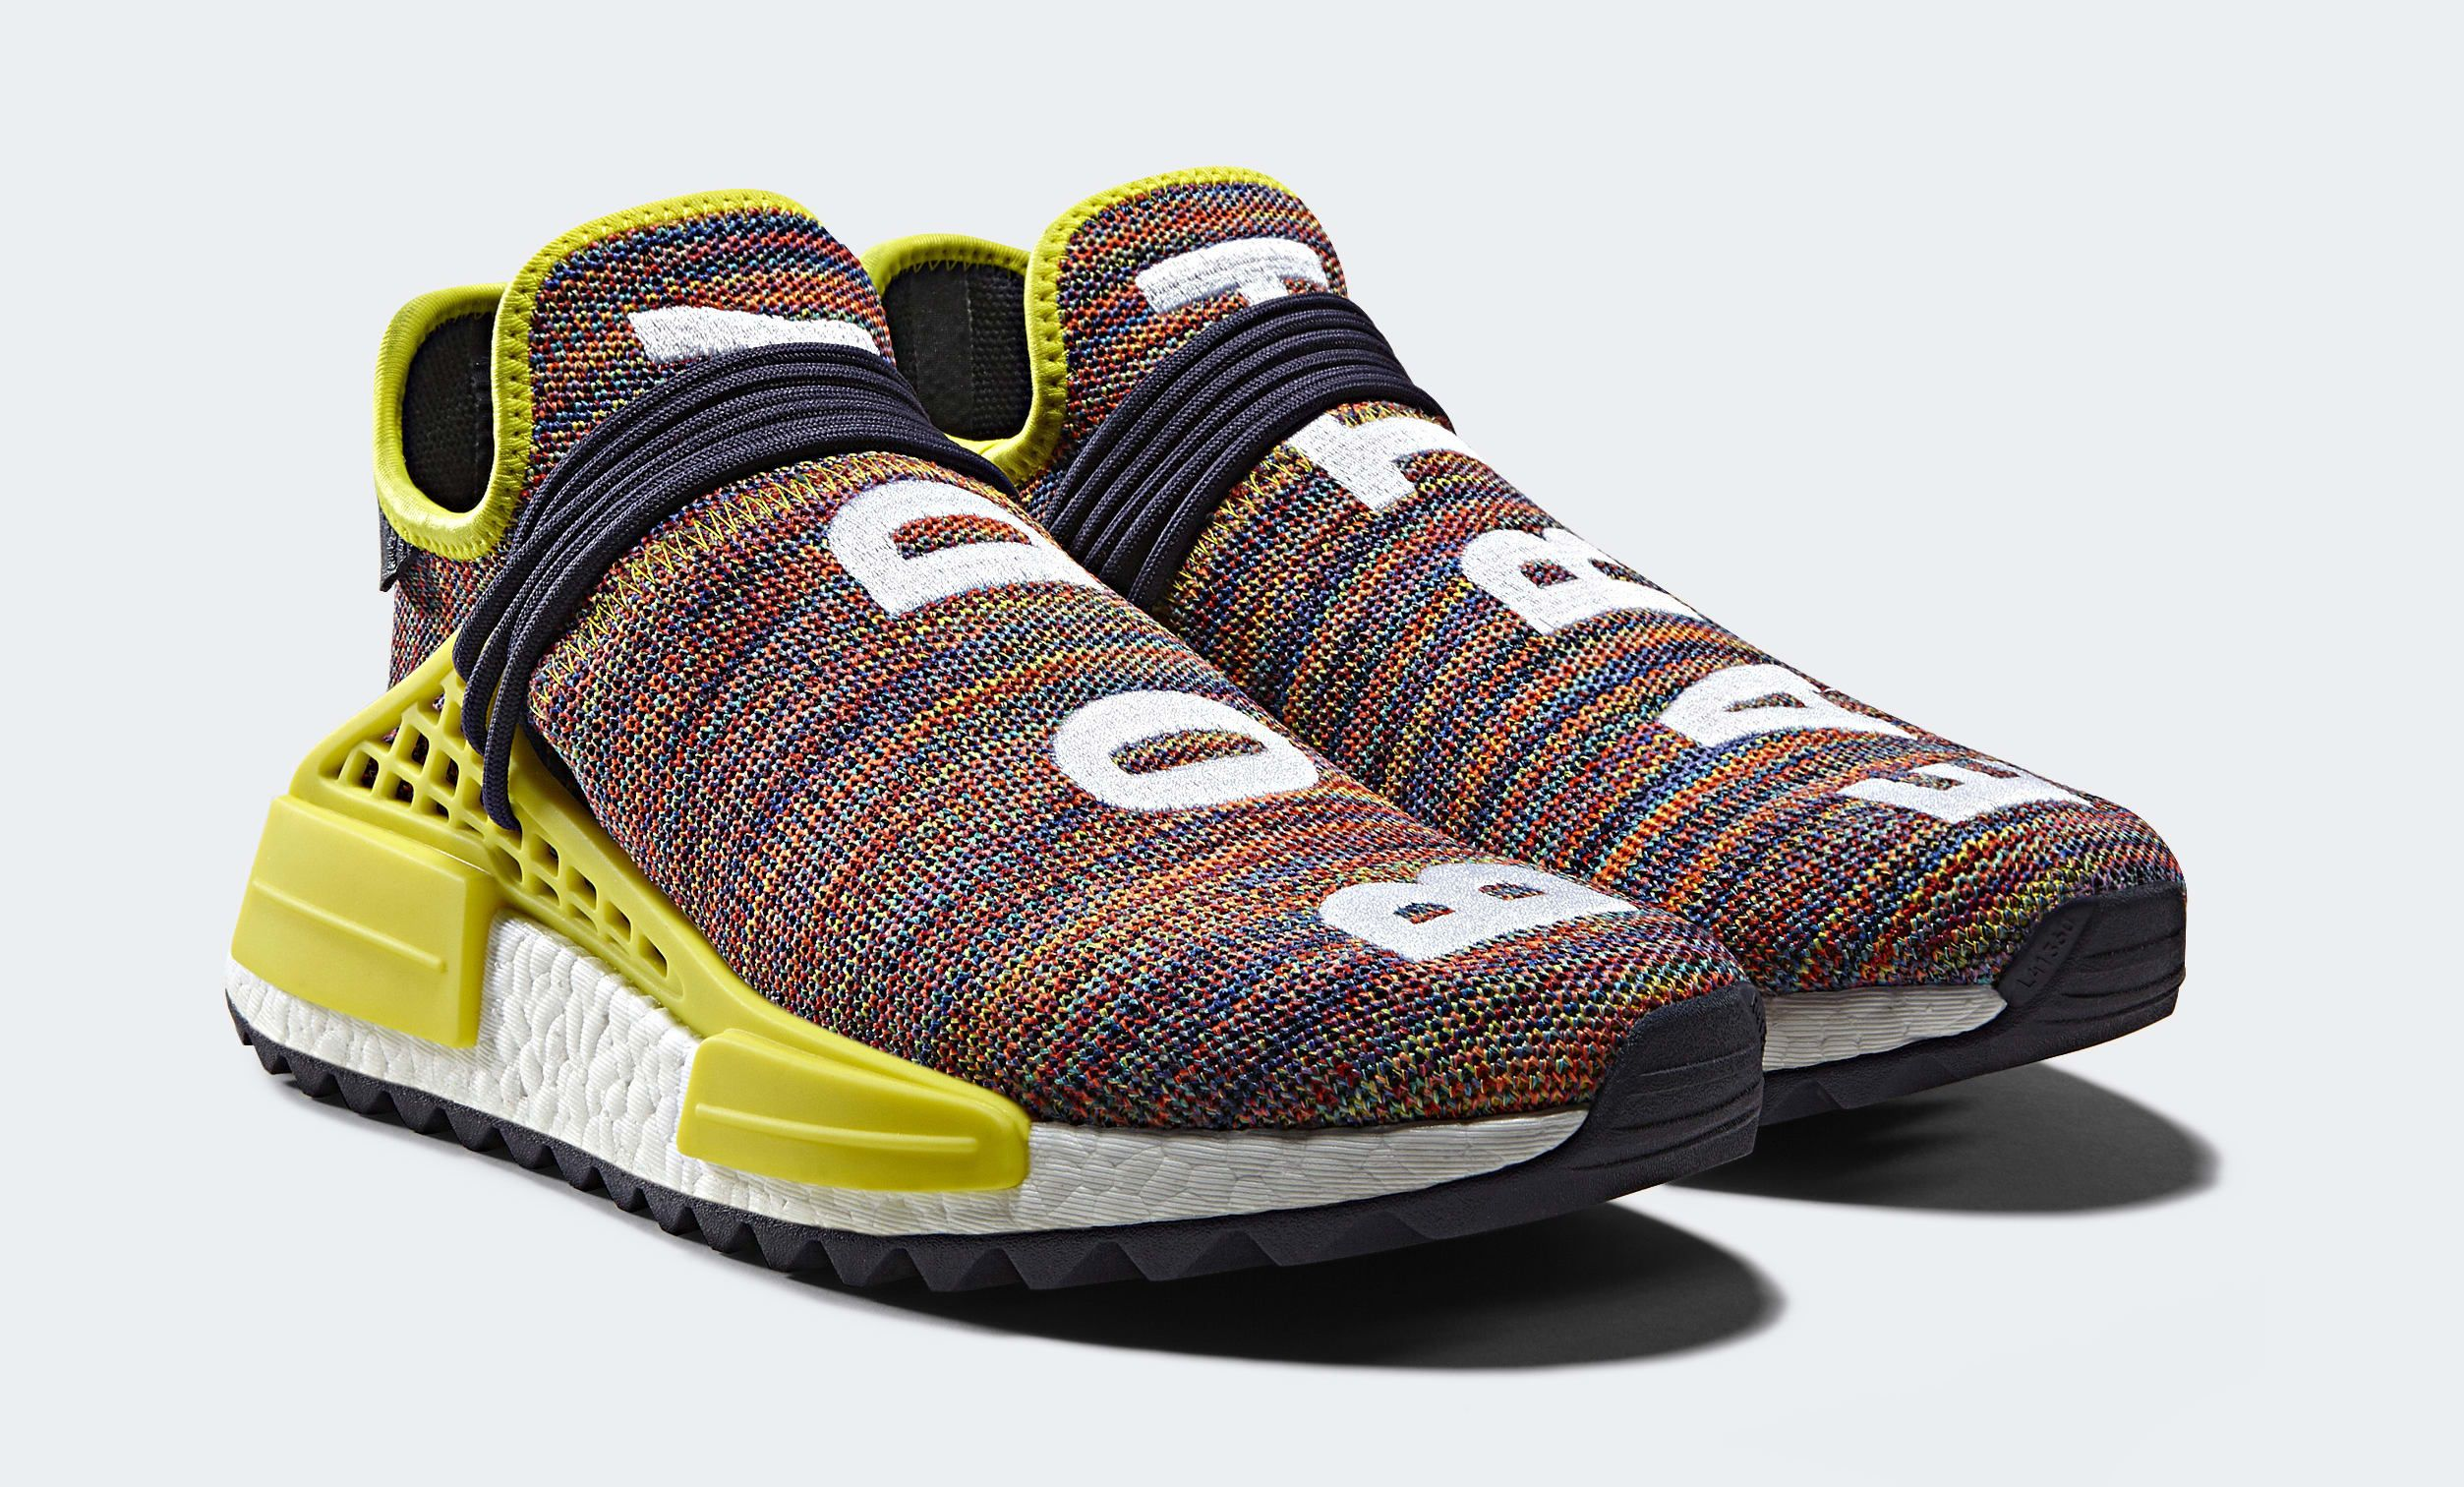 new styles 816b2 d4803 Pharrell x Adidas Originals Hu NMD TR  Hiking Collection  AC7360 (Pair)